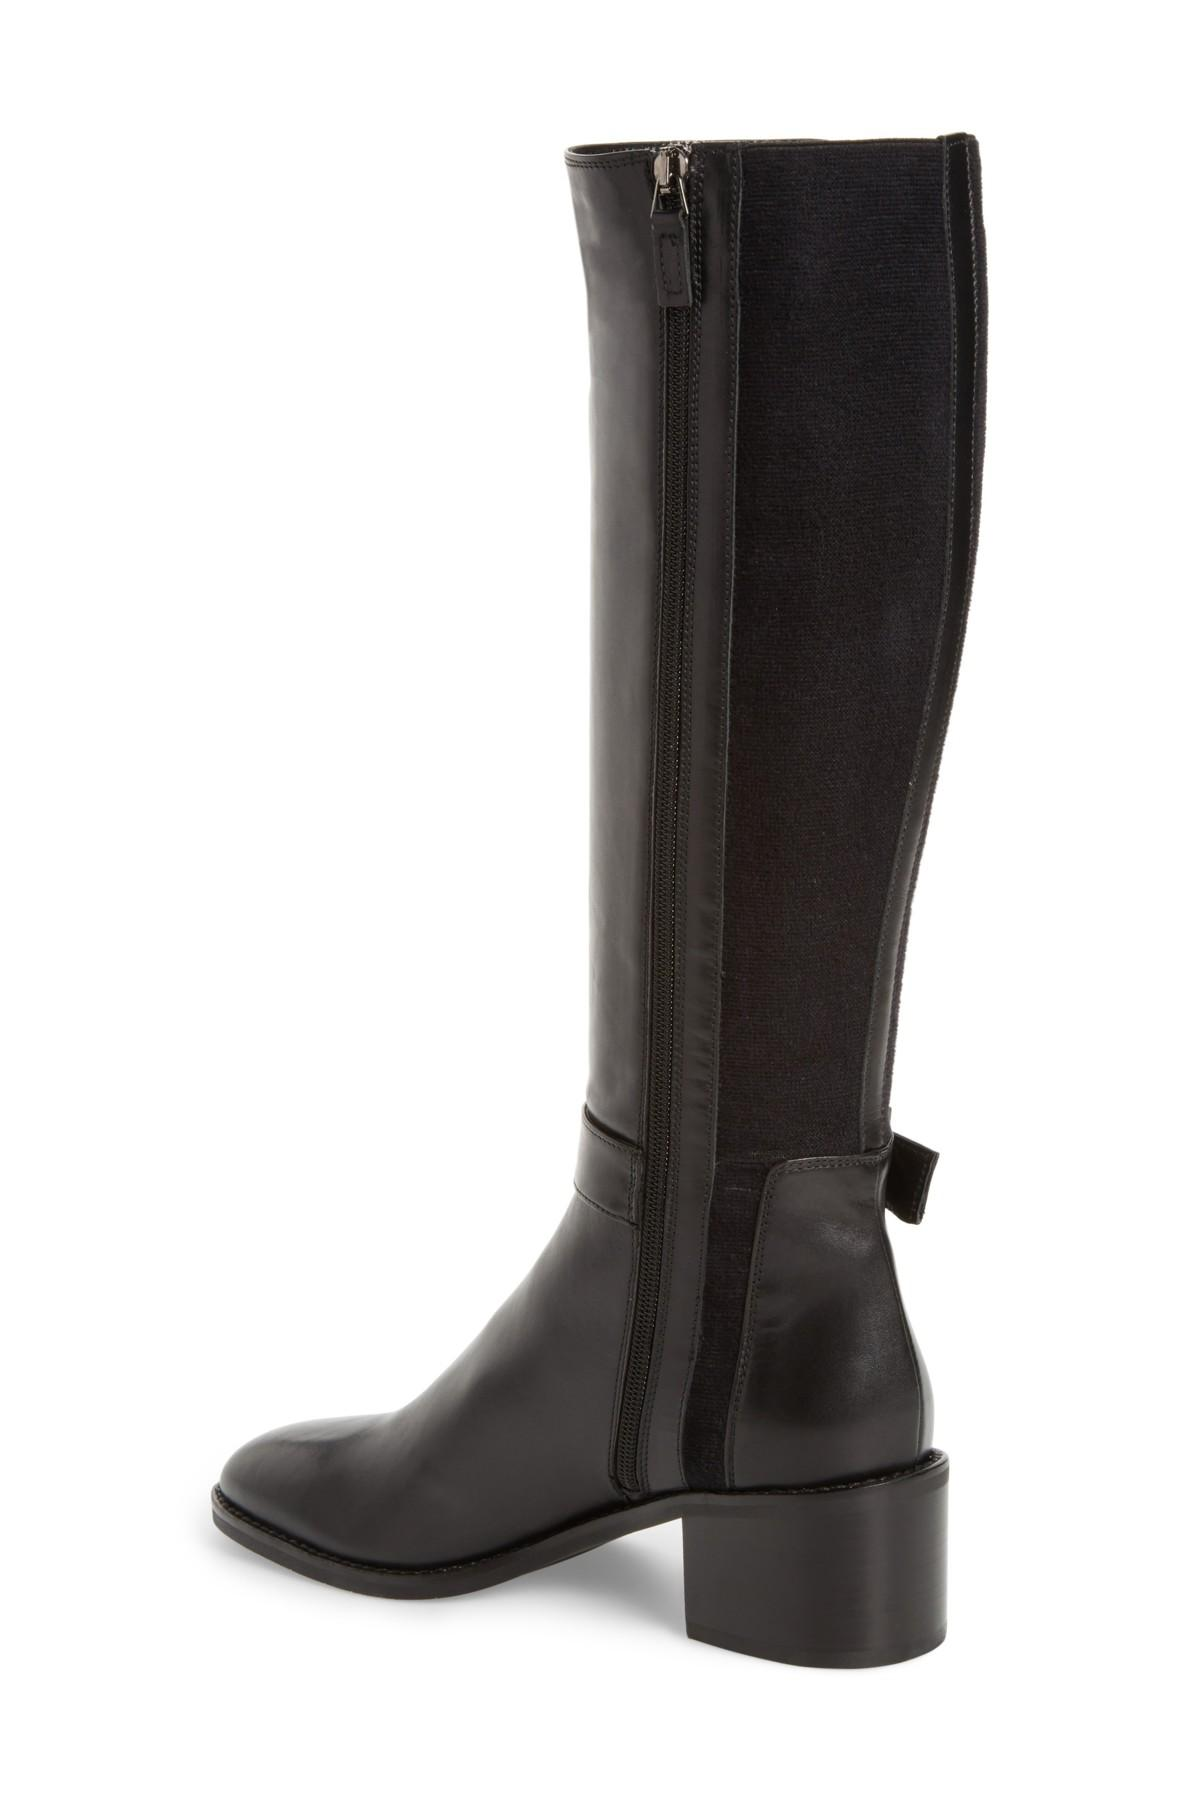 9f34855f23c Aquatalia Joanna Weatherproof Tall Boot in Black - Save ...